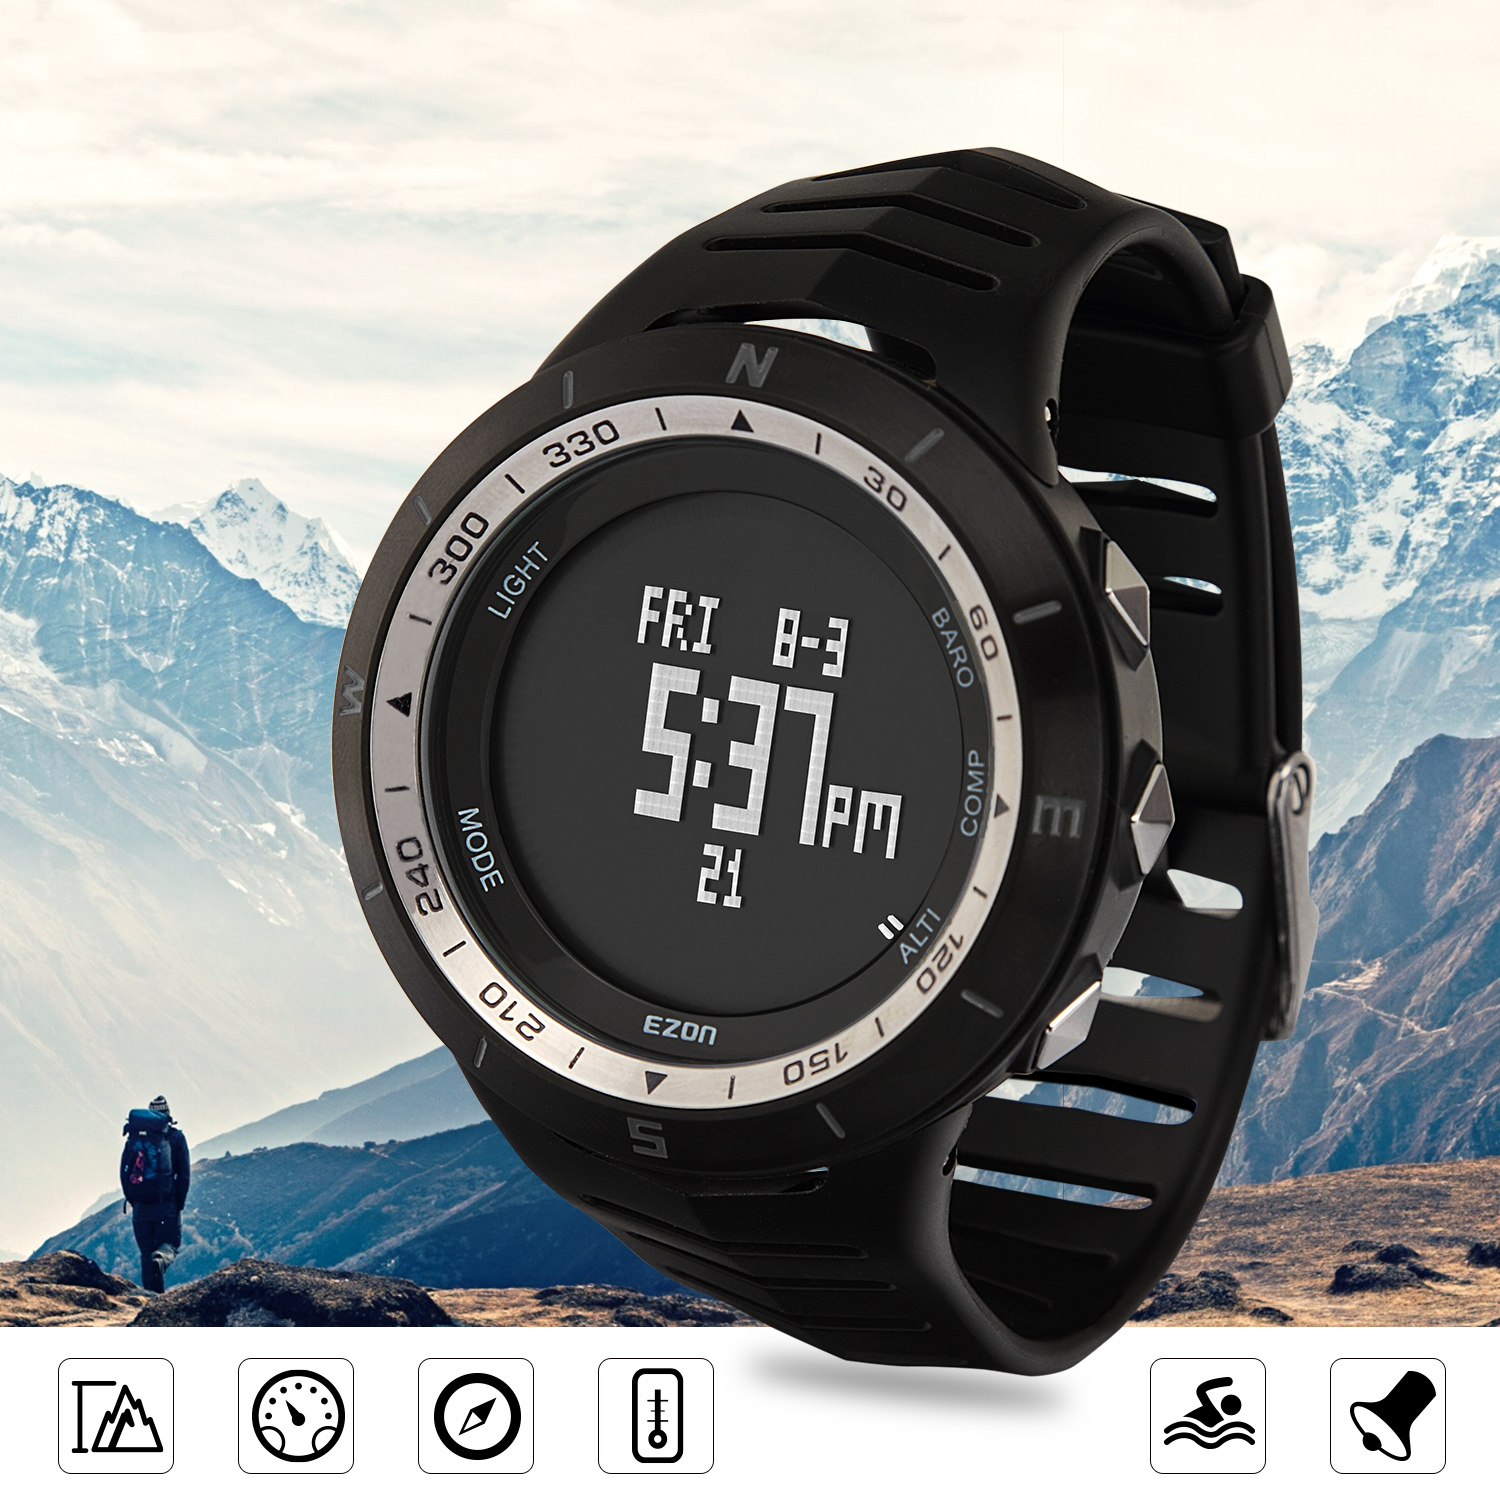 H005A01(Black) Multi-function Outdoor Mountaineering Watch